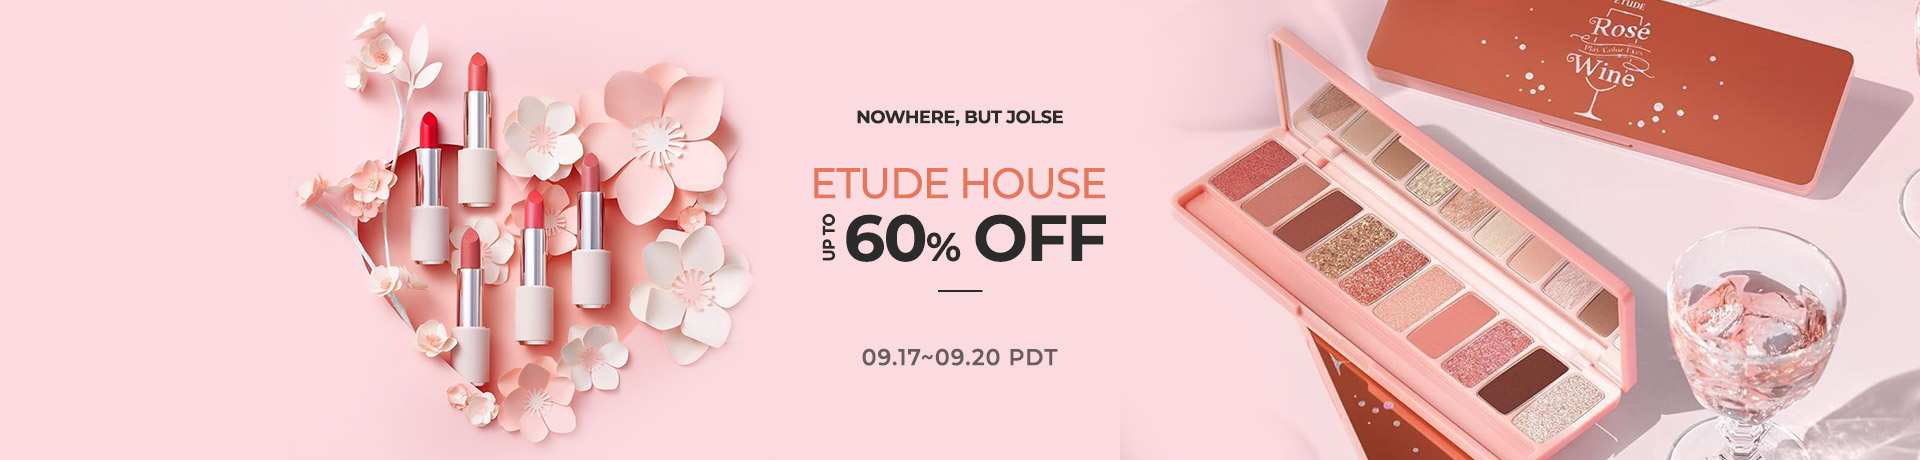 ETUDE HOUSE Up to 60% OFF